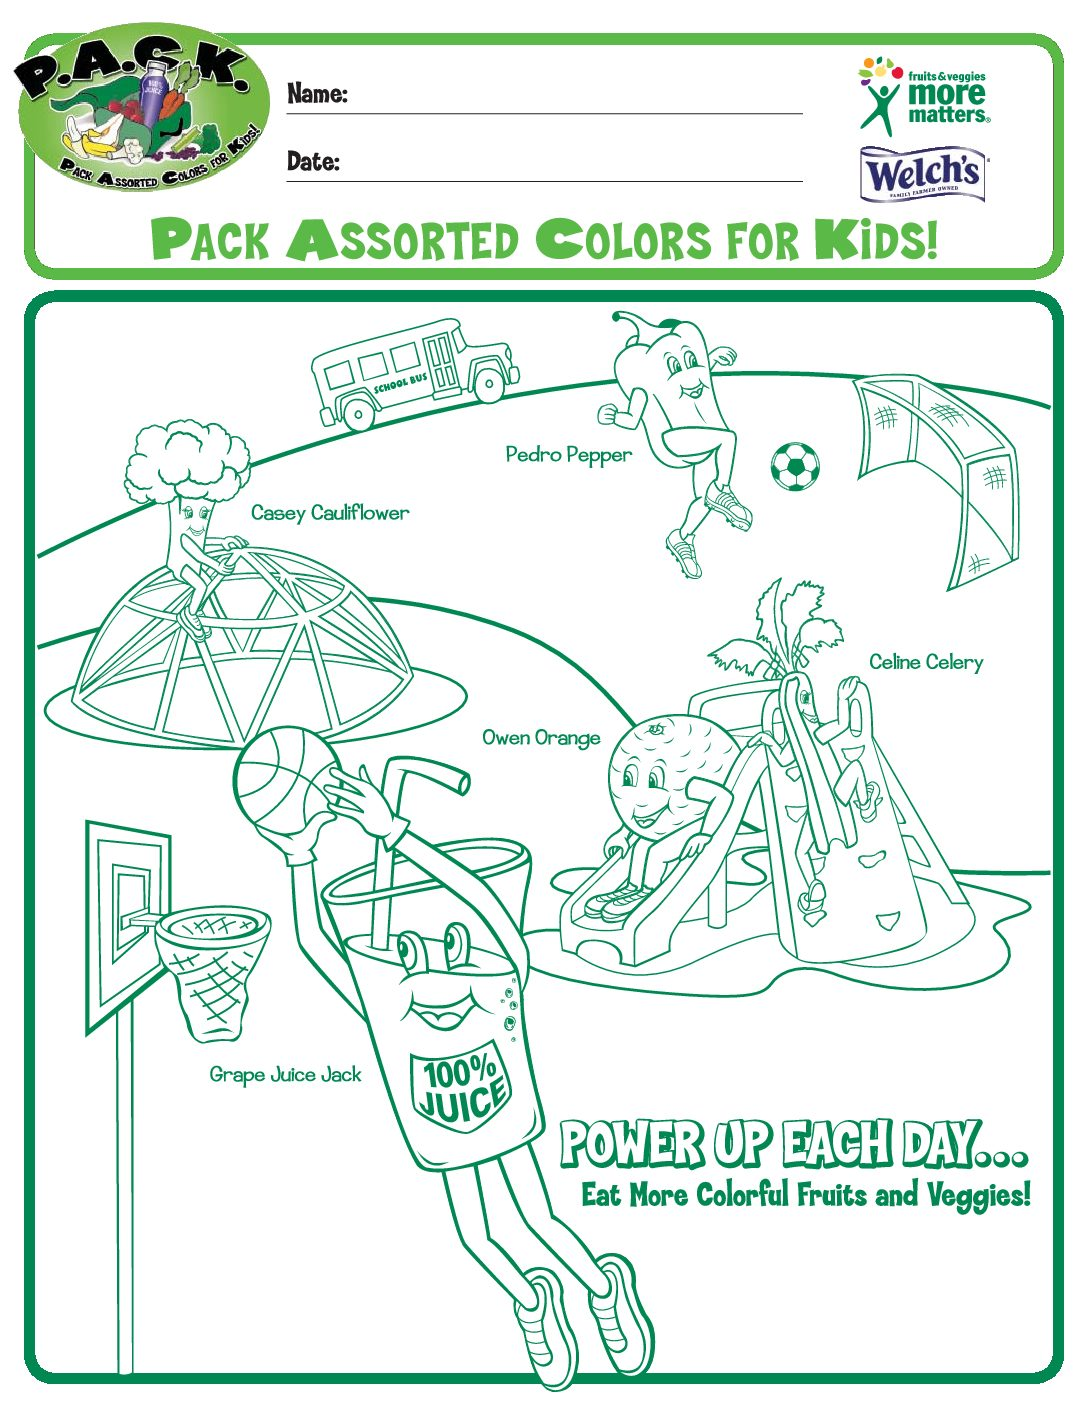 P.A.C.K. – Pack Assorted Colors for Kids Program - Have A Plant